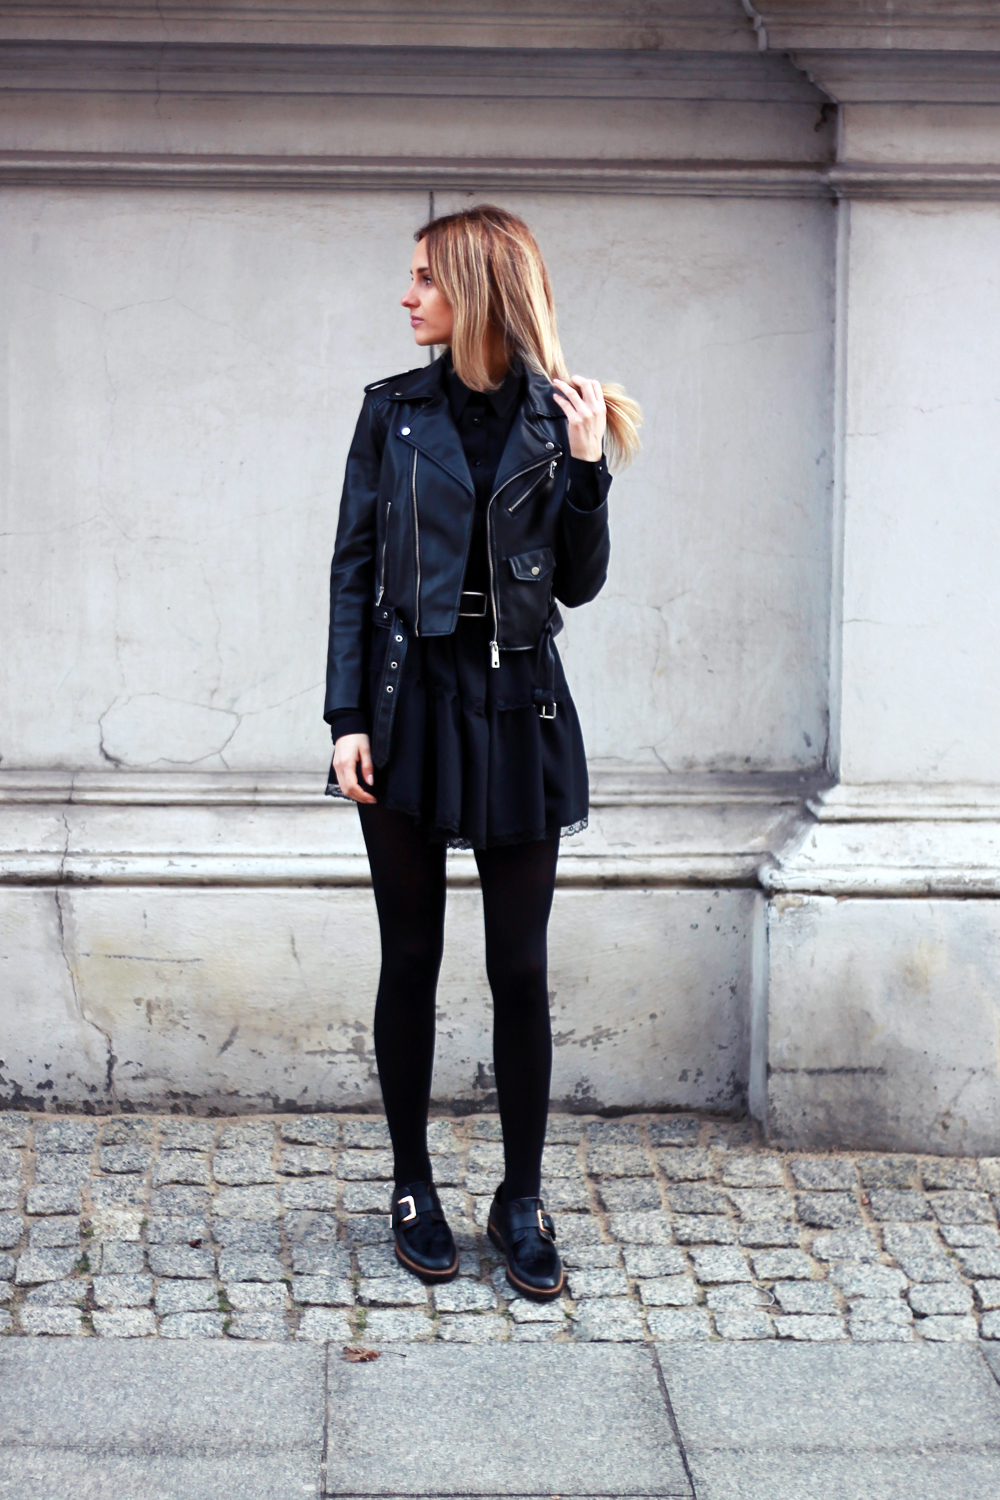 Black dress tumblr - Black Dress Zara Leather Jacket Blonde Tumblr Girl Look Lookbook What To Wear